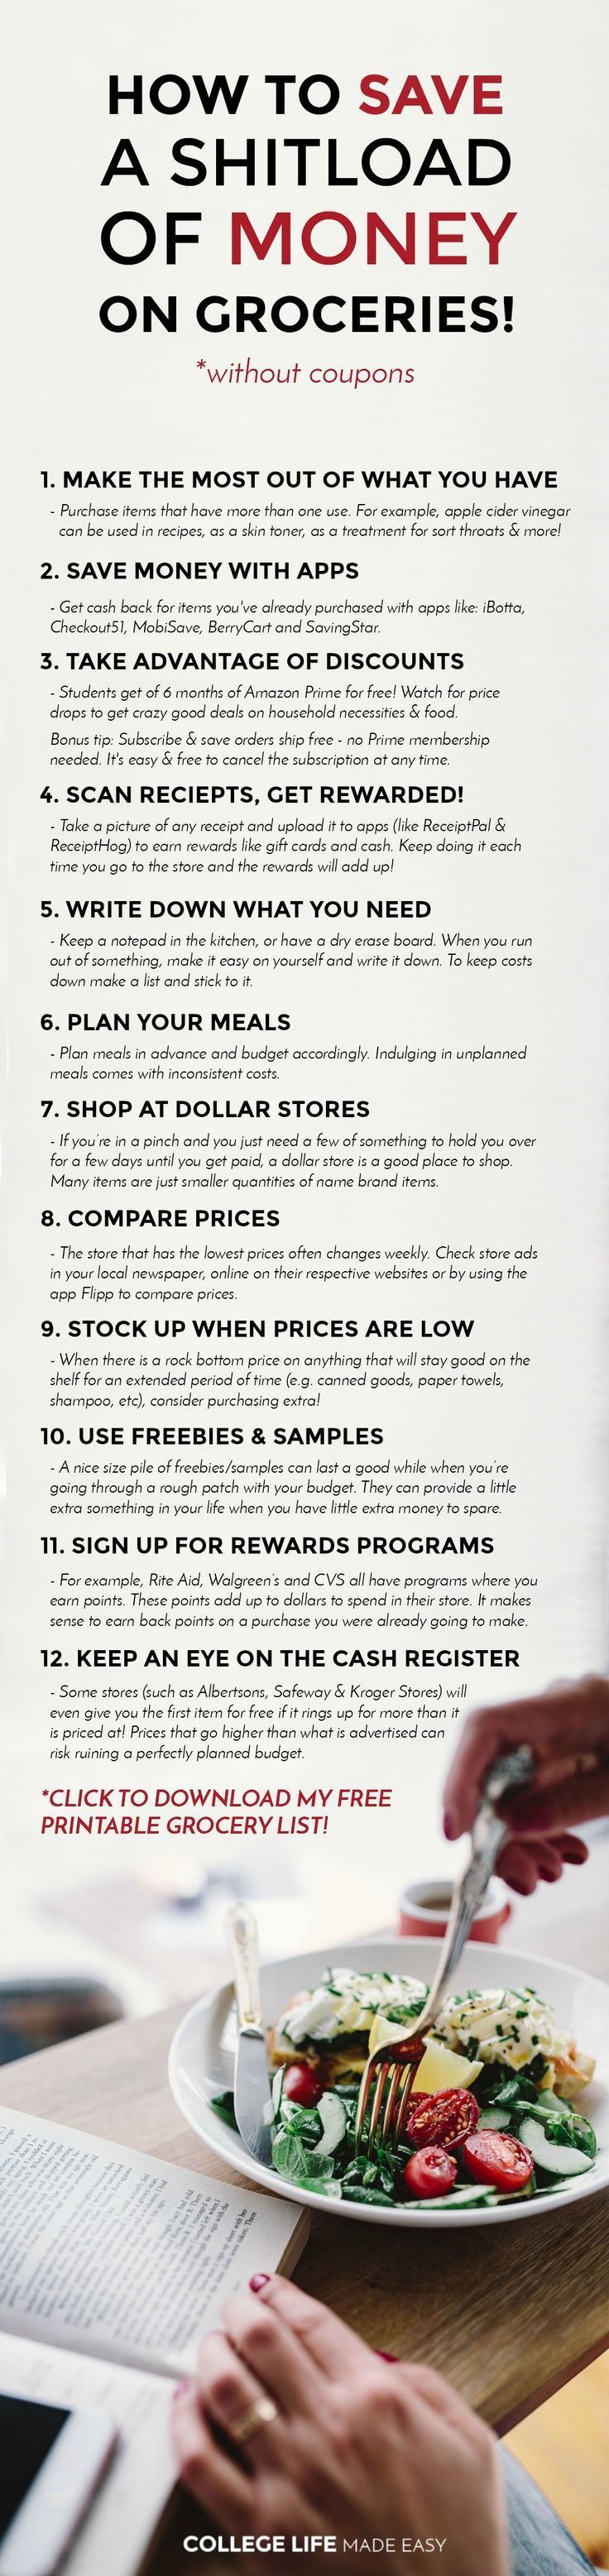 12 must know money saving tips to cut down your grocery bill finanzas without coupons free printable grocery solutioingenieria Choice Image